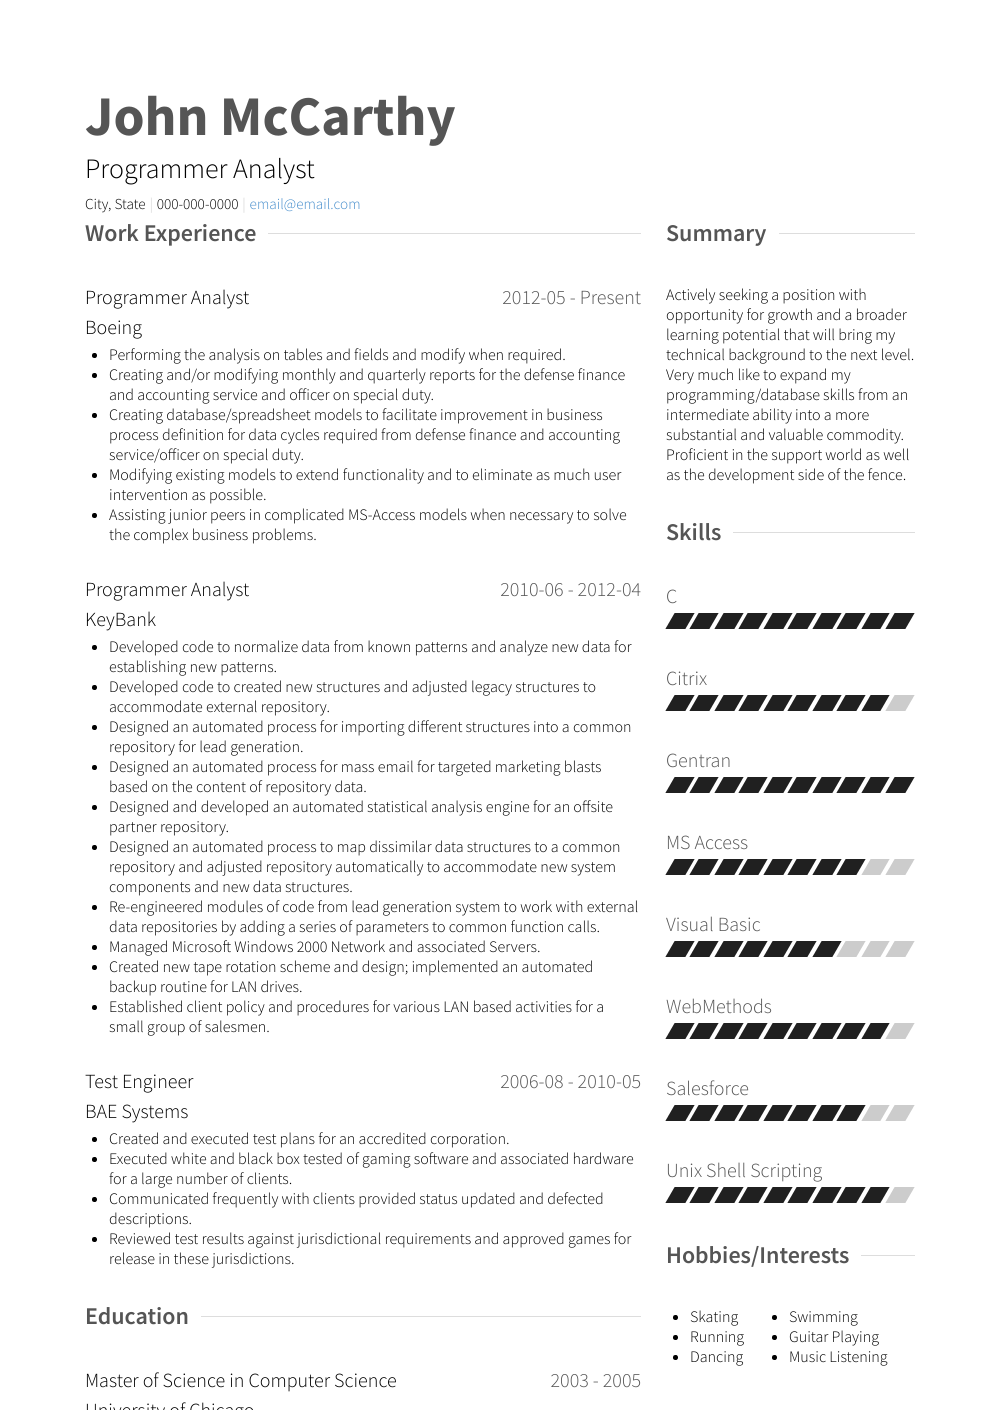 Programmer Analyst Resume Sample